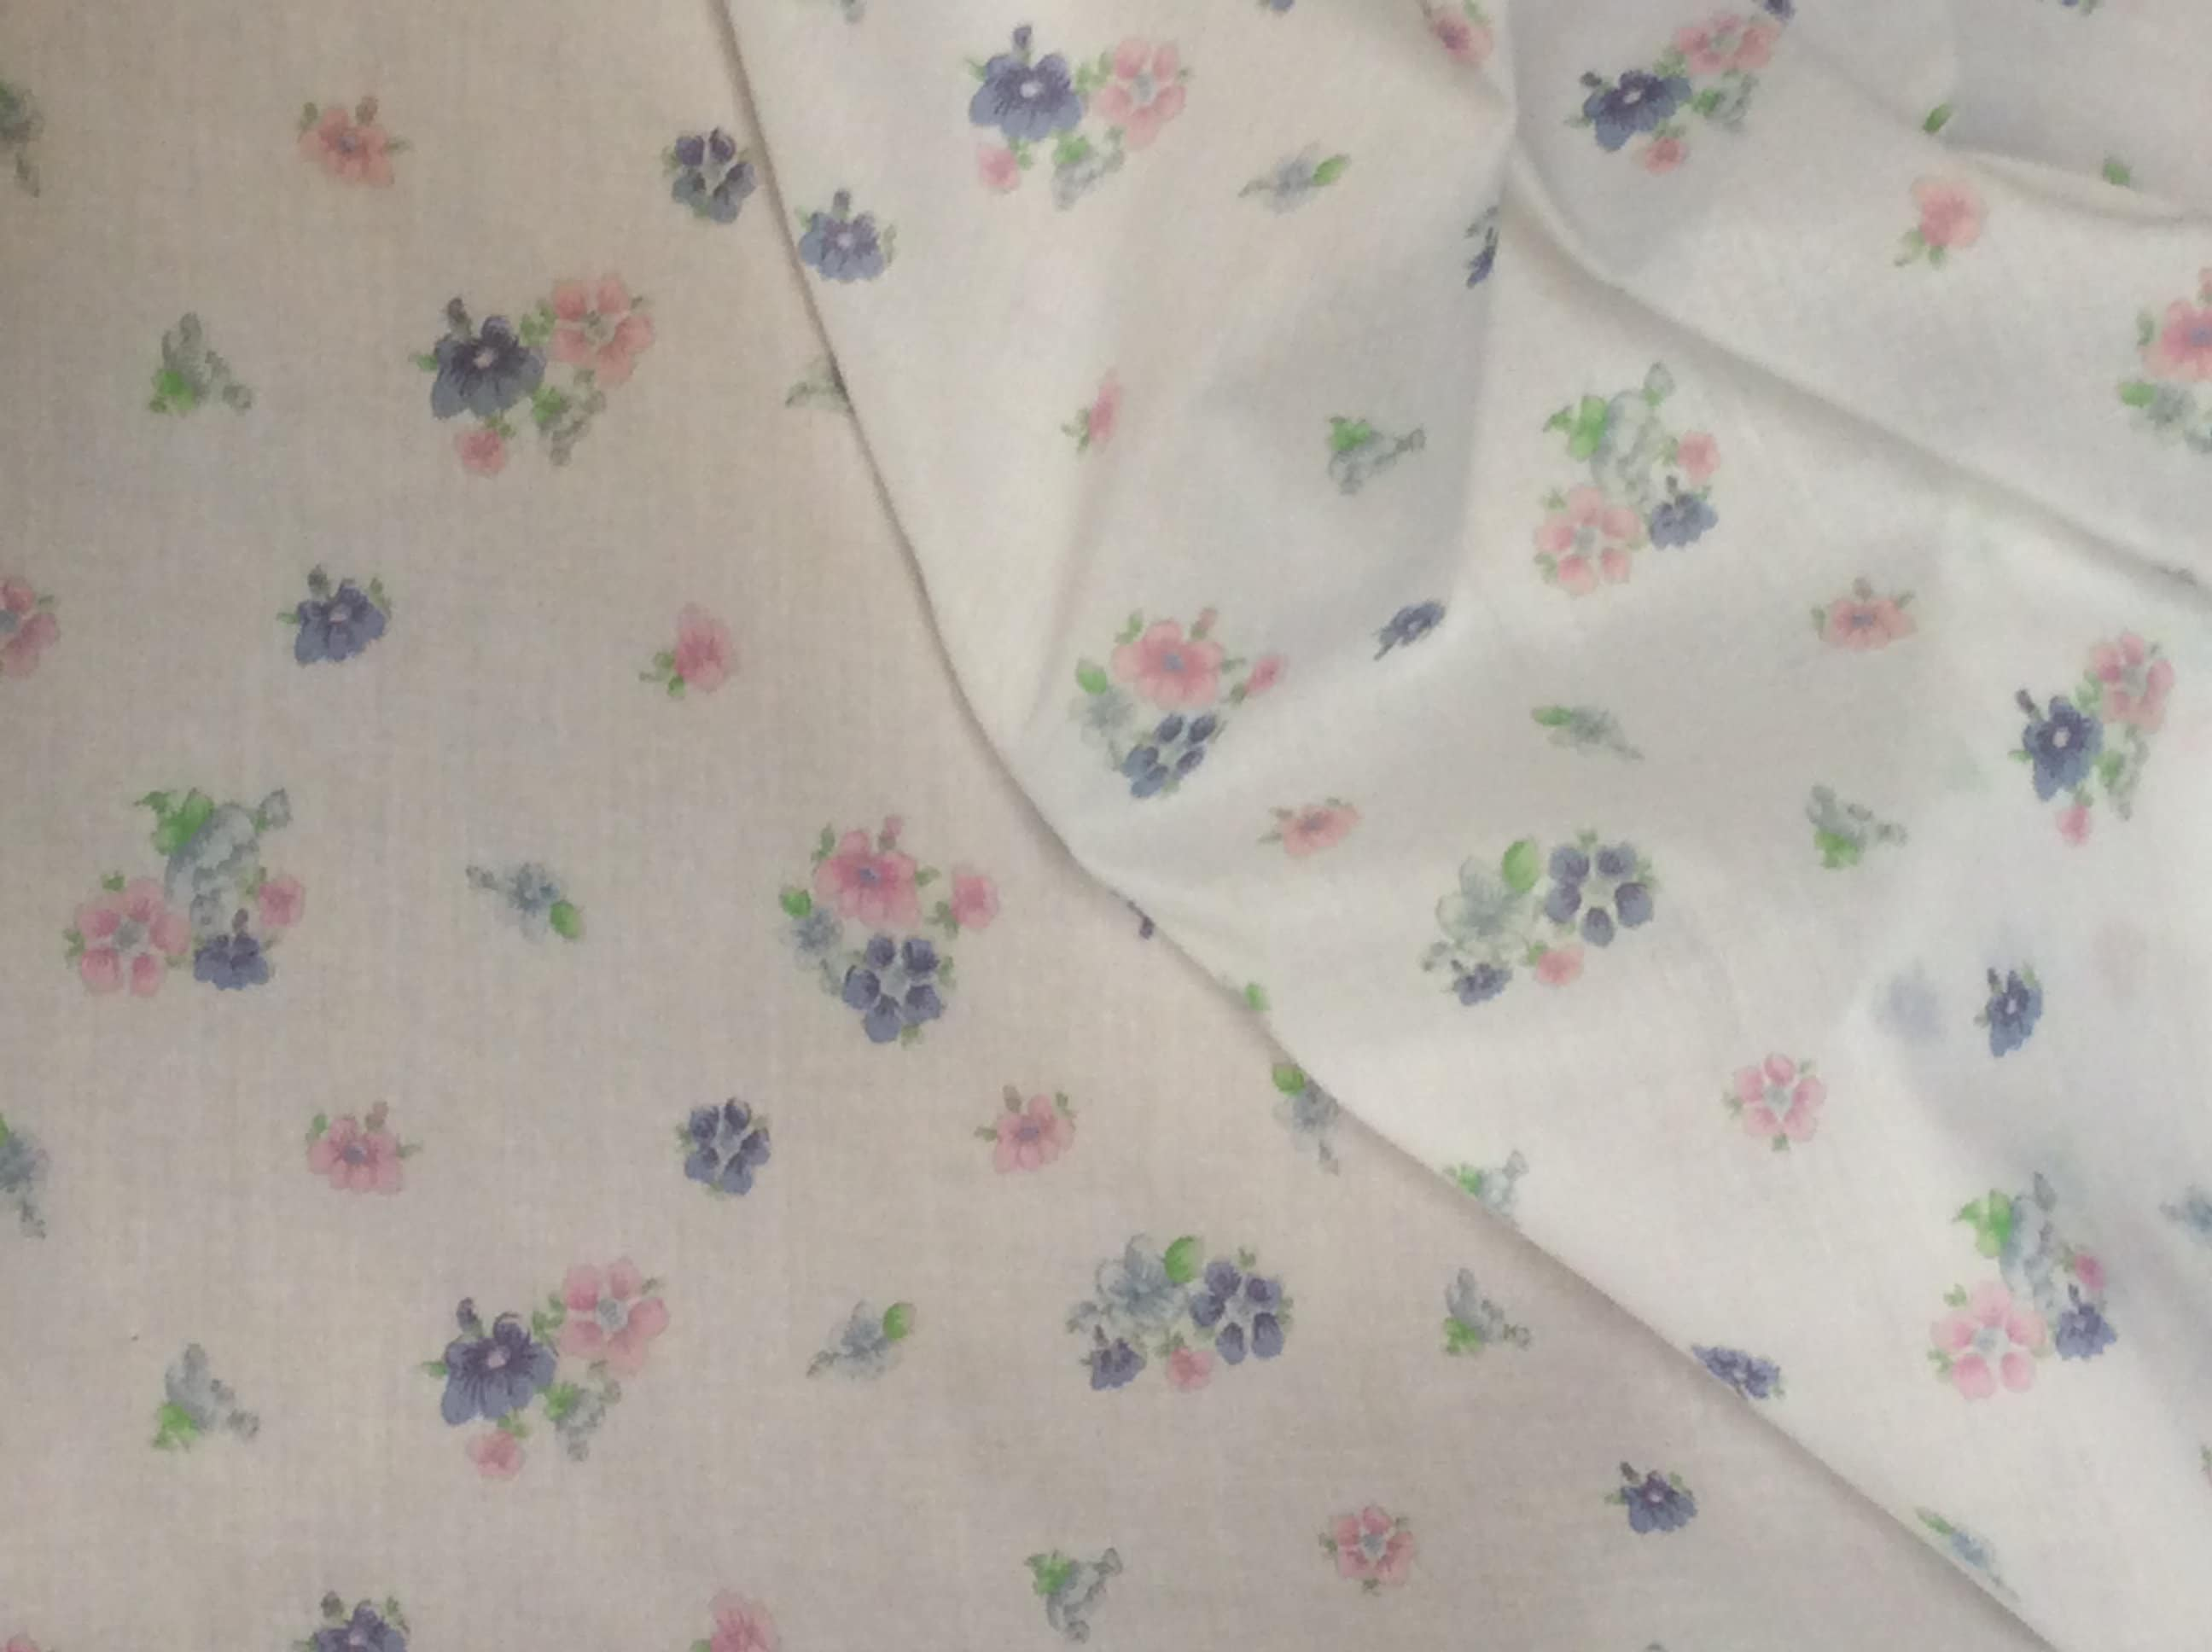 Fabric Lawn Fabric Floral Print Smocking Fabric Dress Fabric